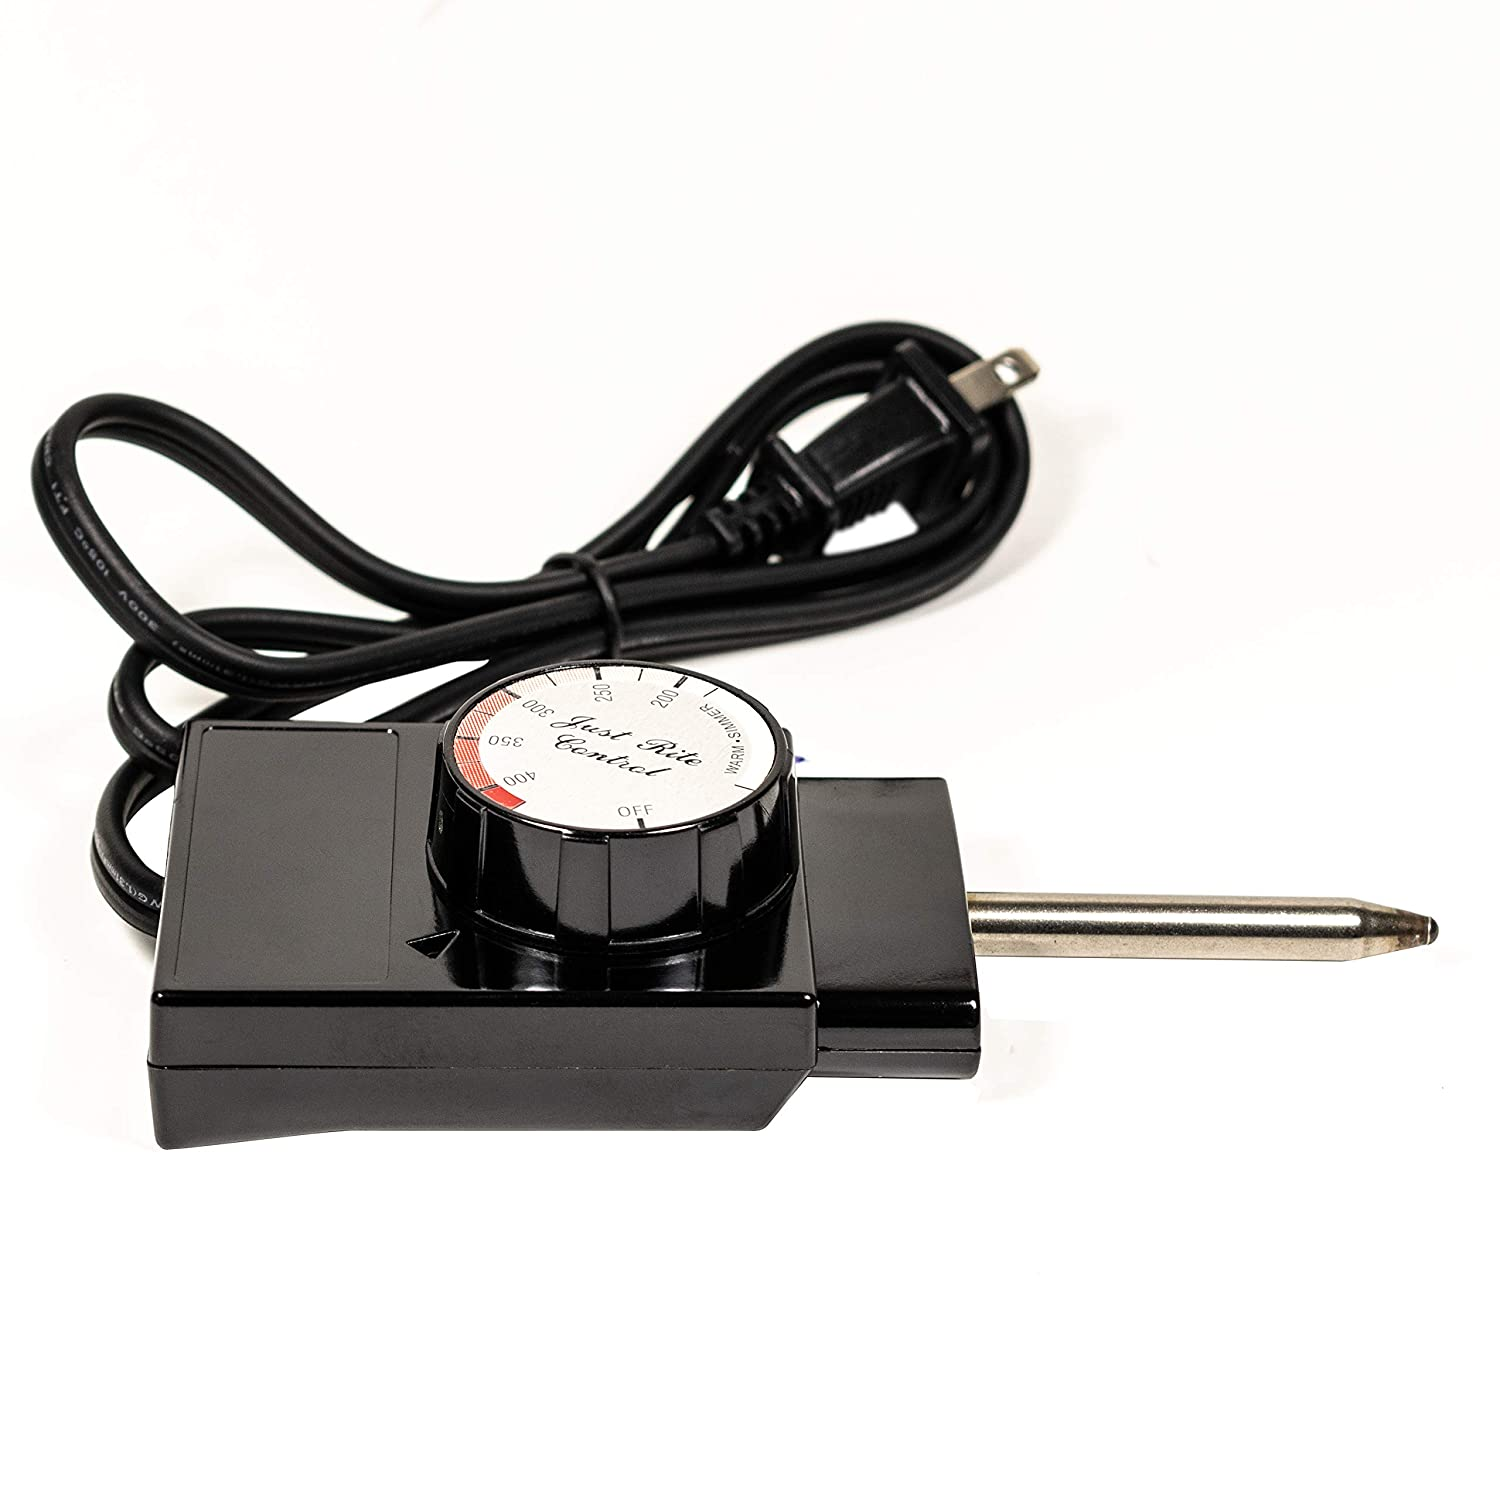 Univen PR3F Wide Thermostat Control Cord fits Frypans and Skillets SEE MEASUREMENTS